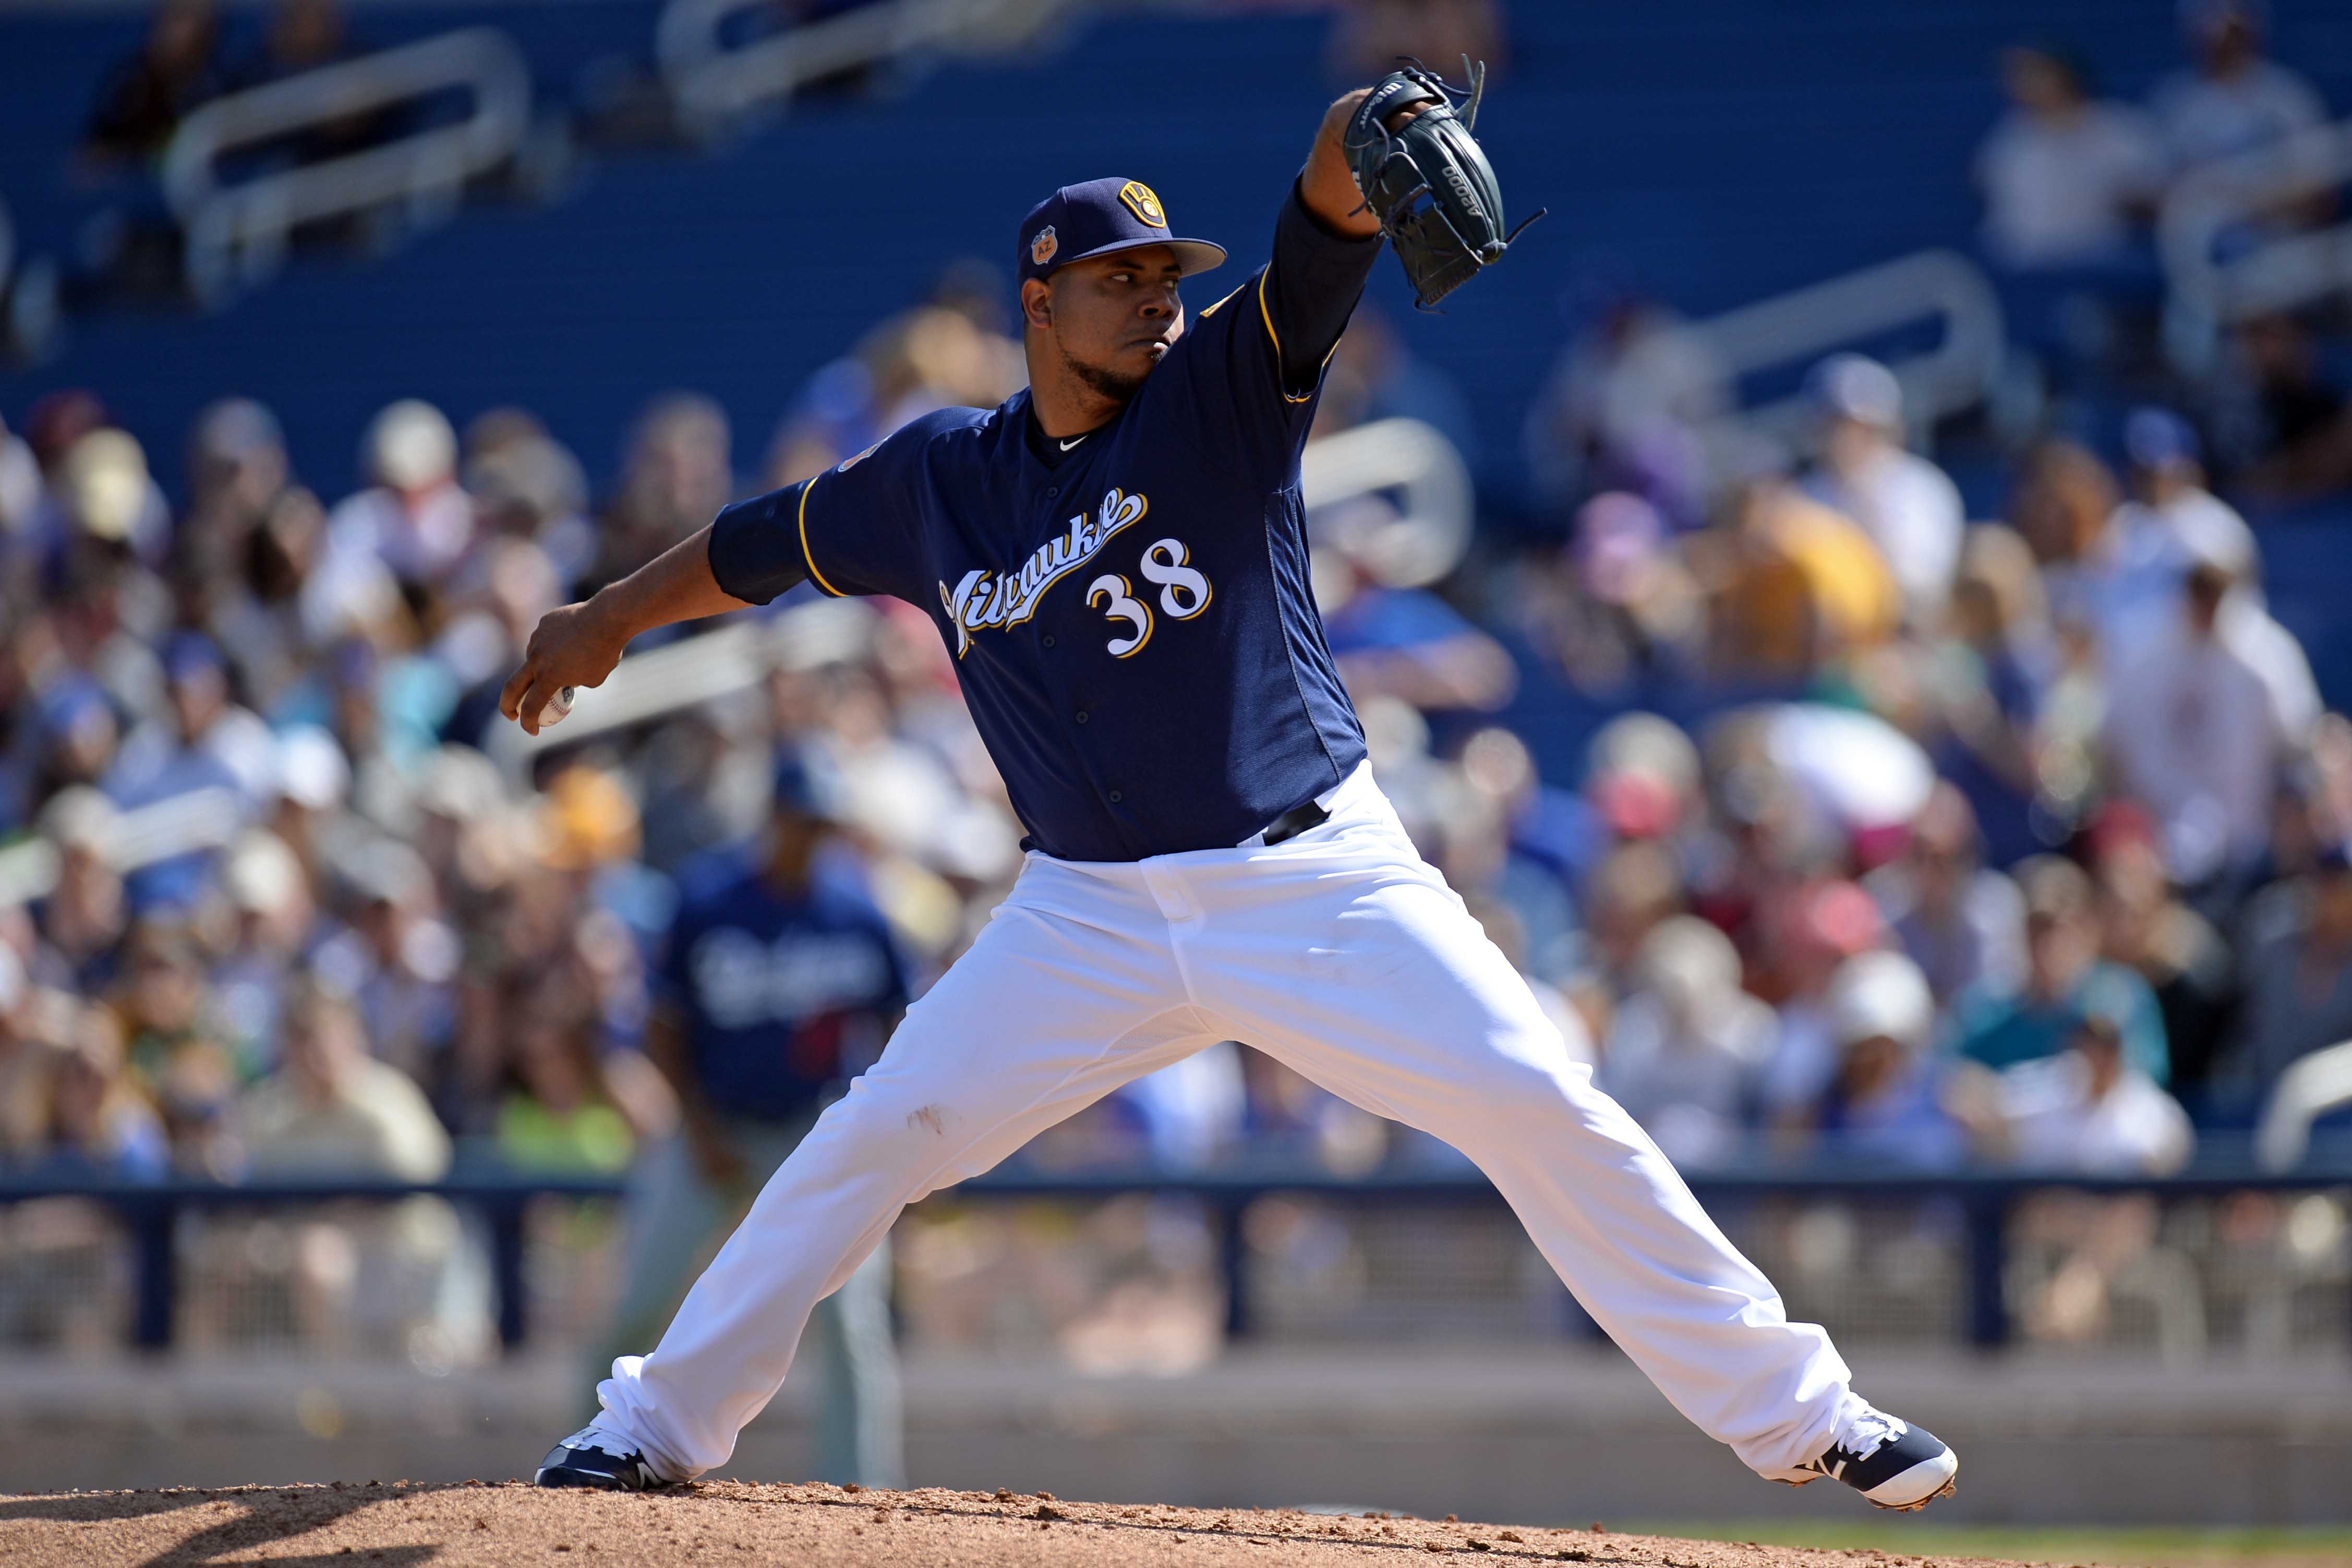 9902462-mlb-spring-training-los-angeles-dodgers-at-milwaukee-brewers